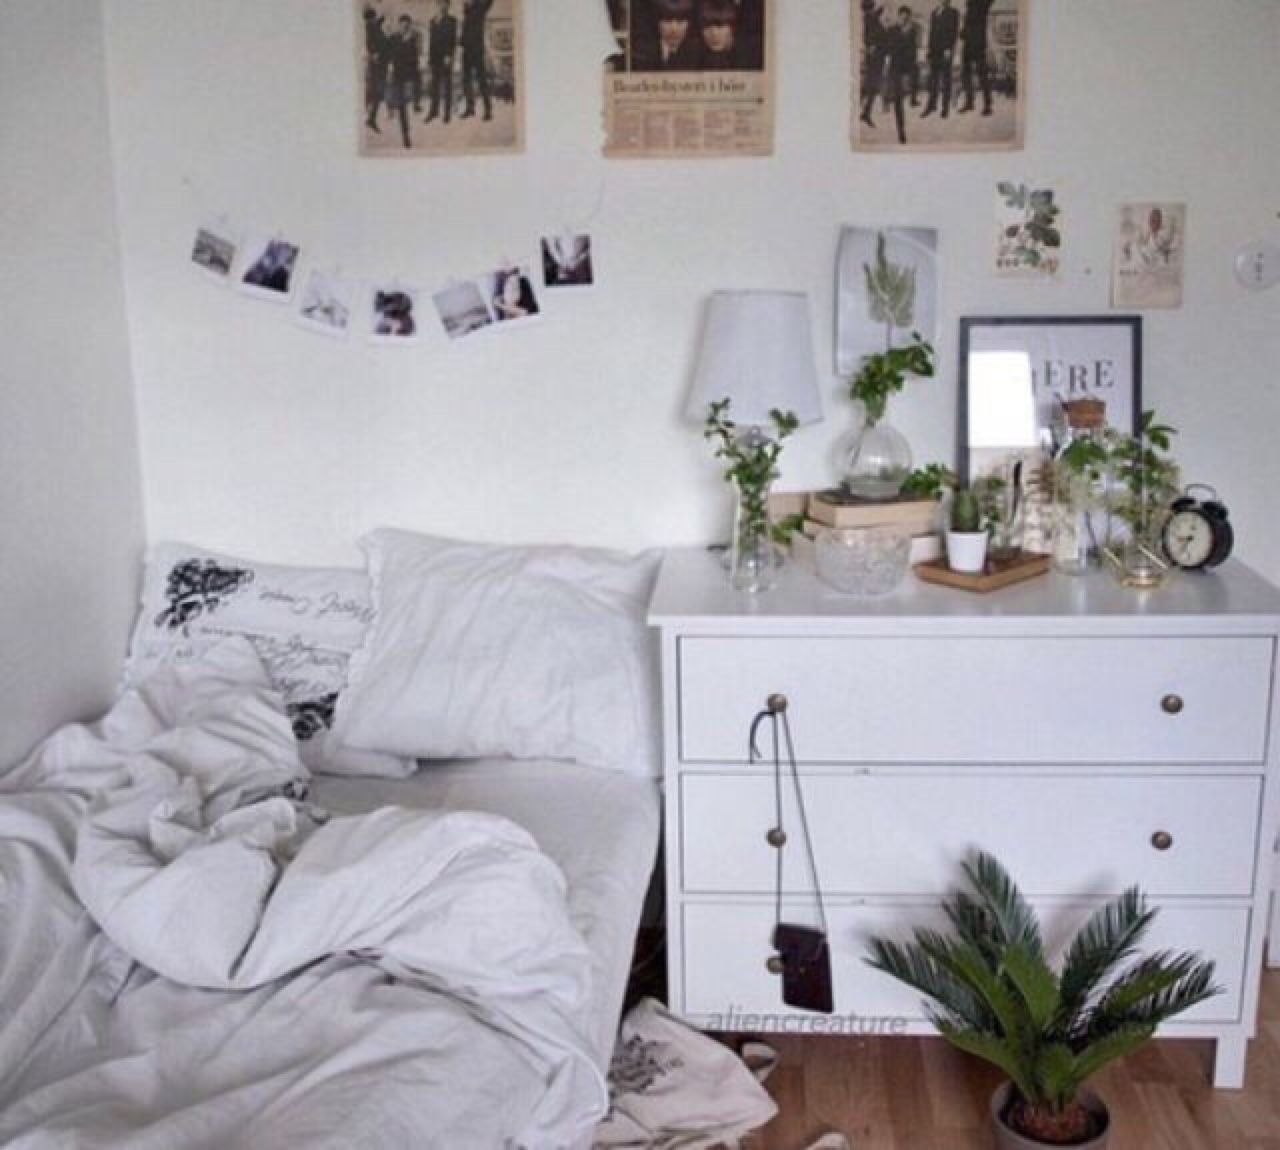 Aesthetic tumblr grunge room google search tumblrroom bedroom ideas pinterest decor and also rh